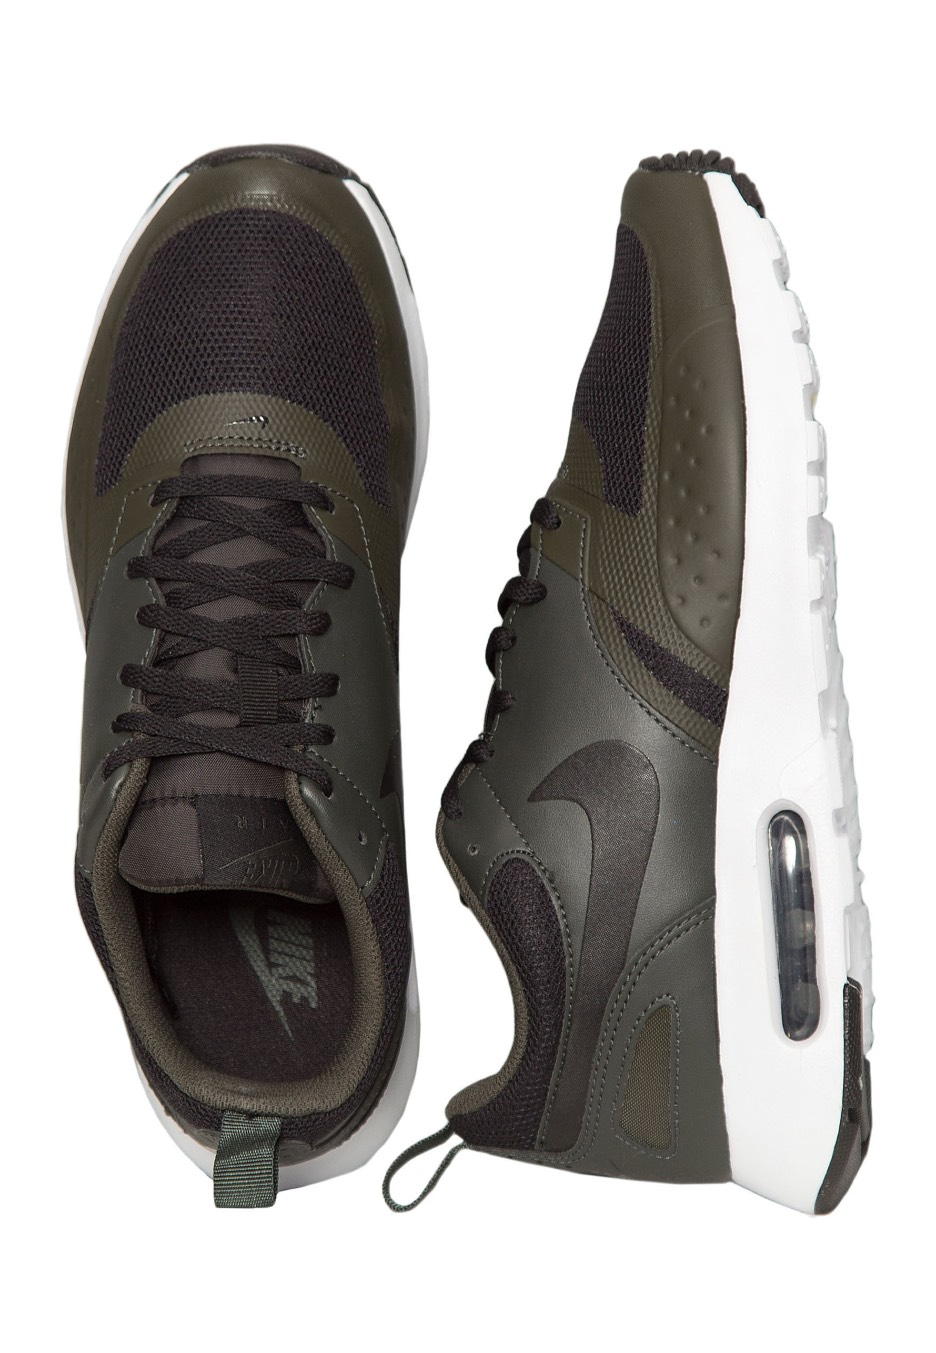 Nike - Air Max Vision Black/Black/Sequoia - Shoes